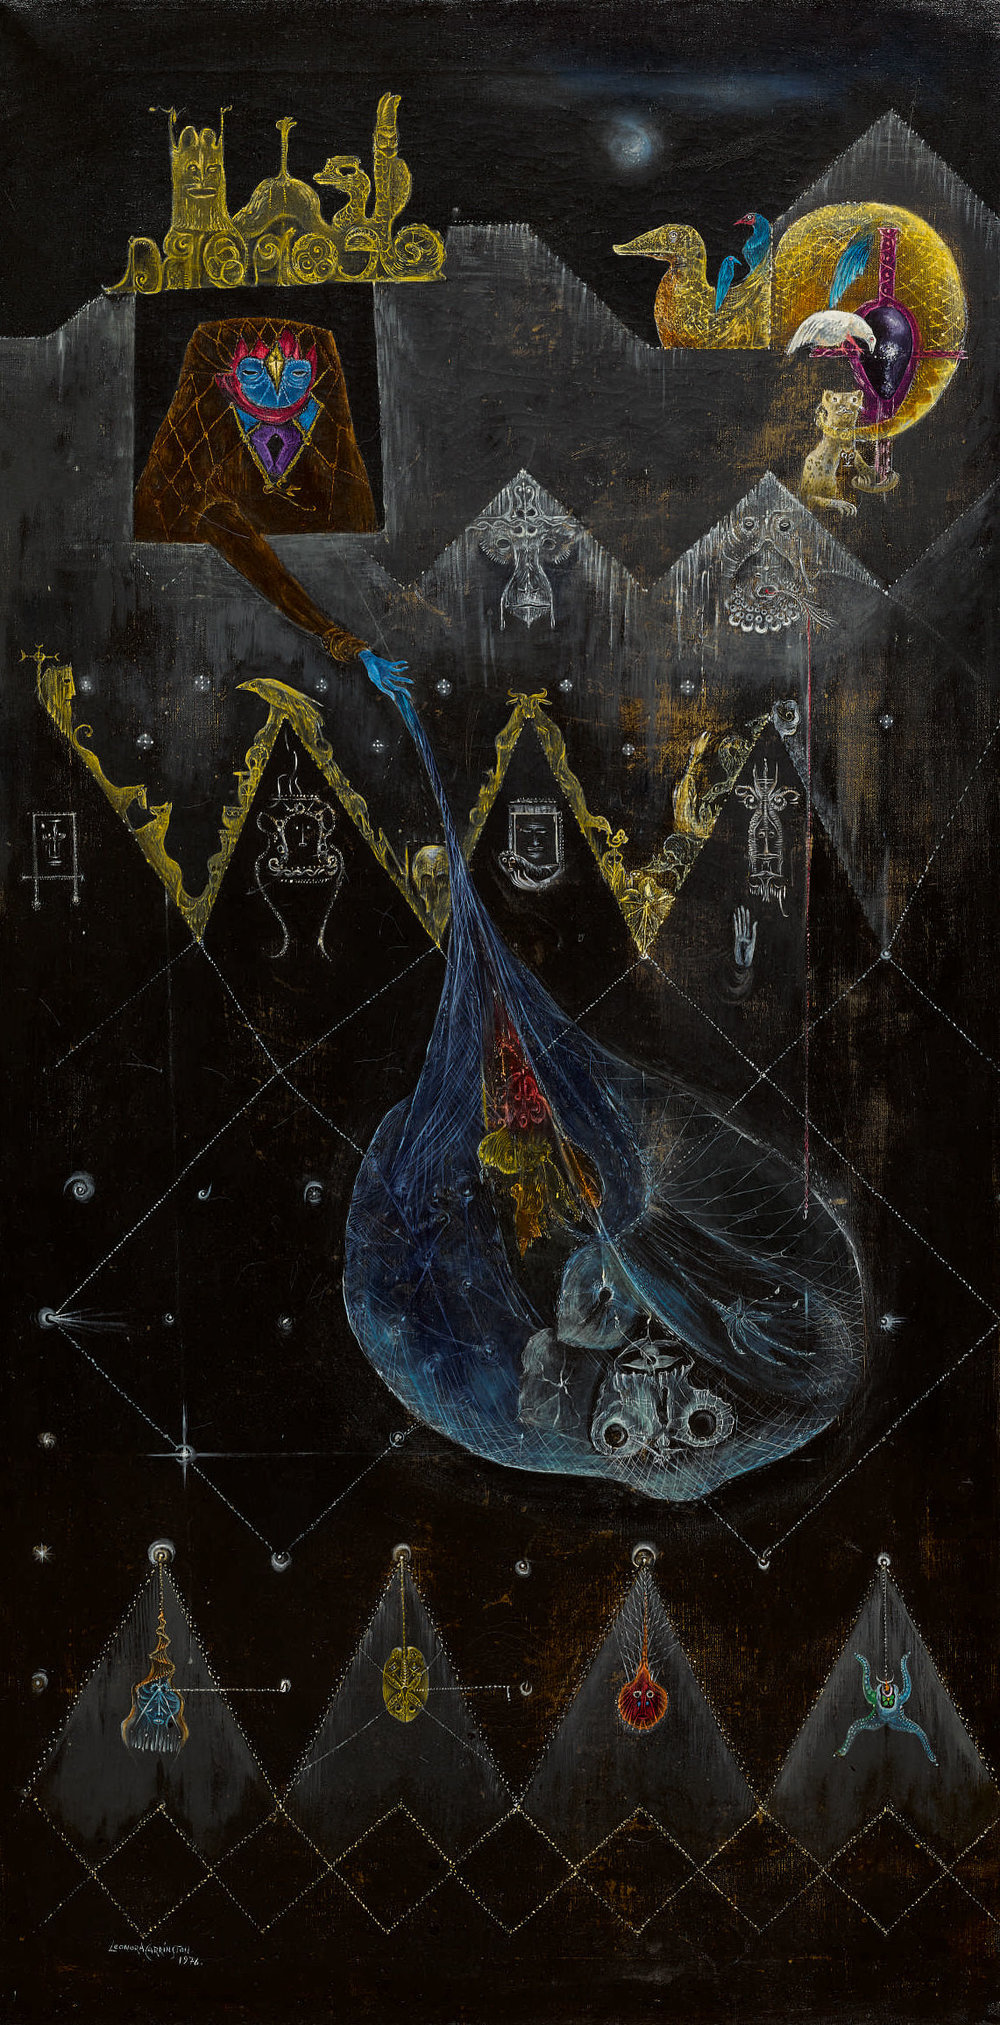 Leonora Carrington,  The Dark Night of Aranoë , 1976. Courtesy of Sotheby's.